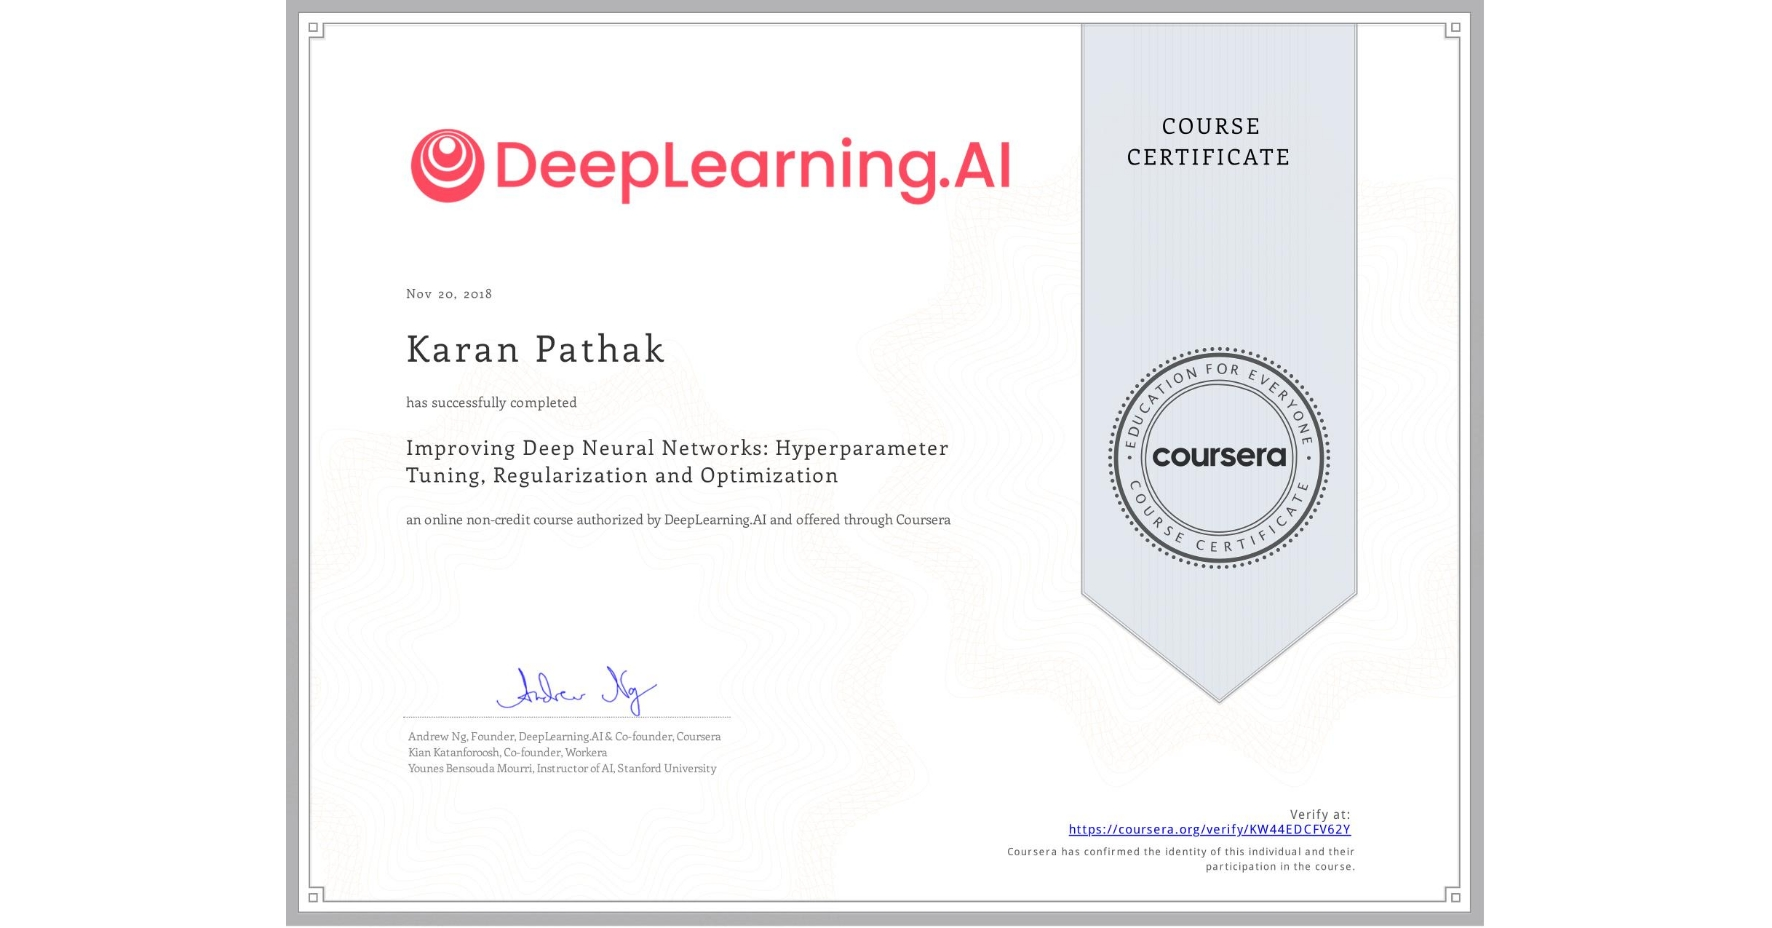 View certificate for Karan Pathak, Improving Deep Neural Networks: Hyperparameter Tuning, Regularization and Optimization, an online non-credit course authorized by DeepLearning.AI and offered through Coursera